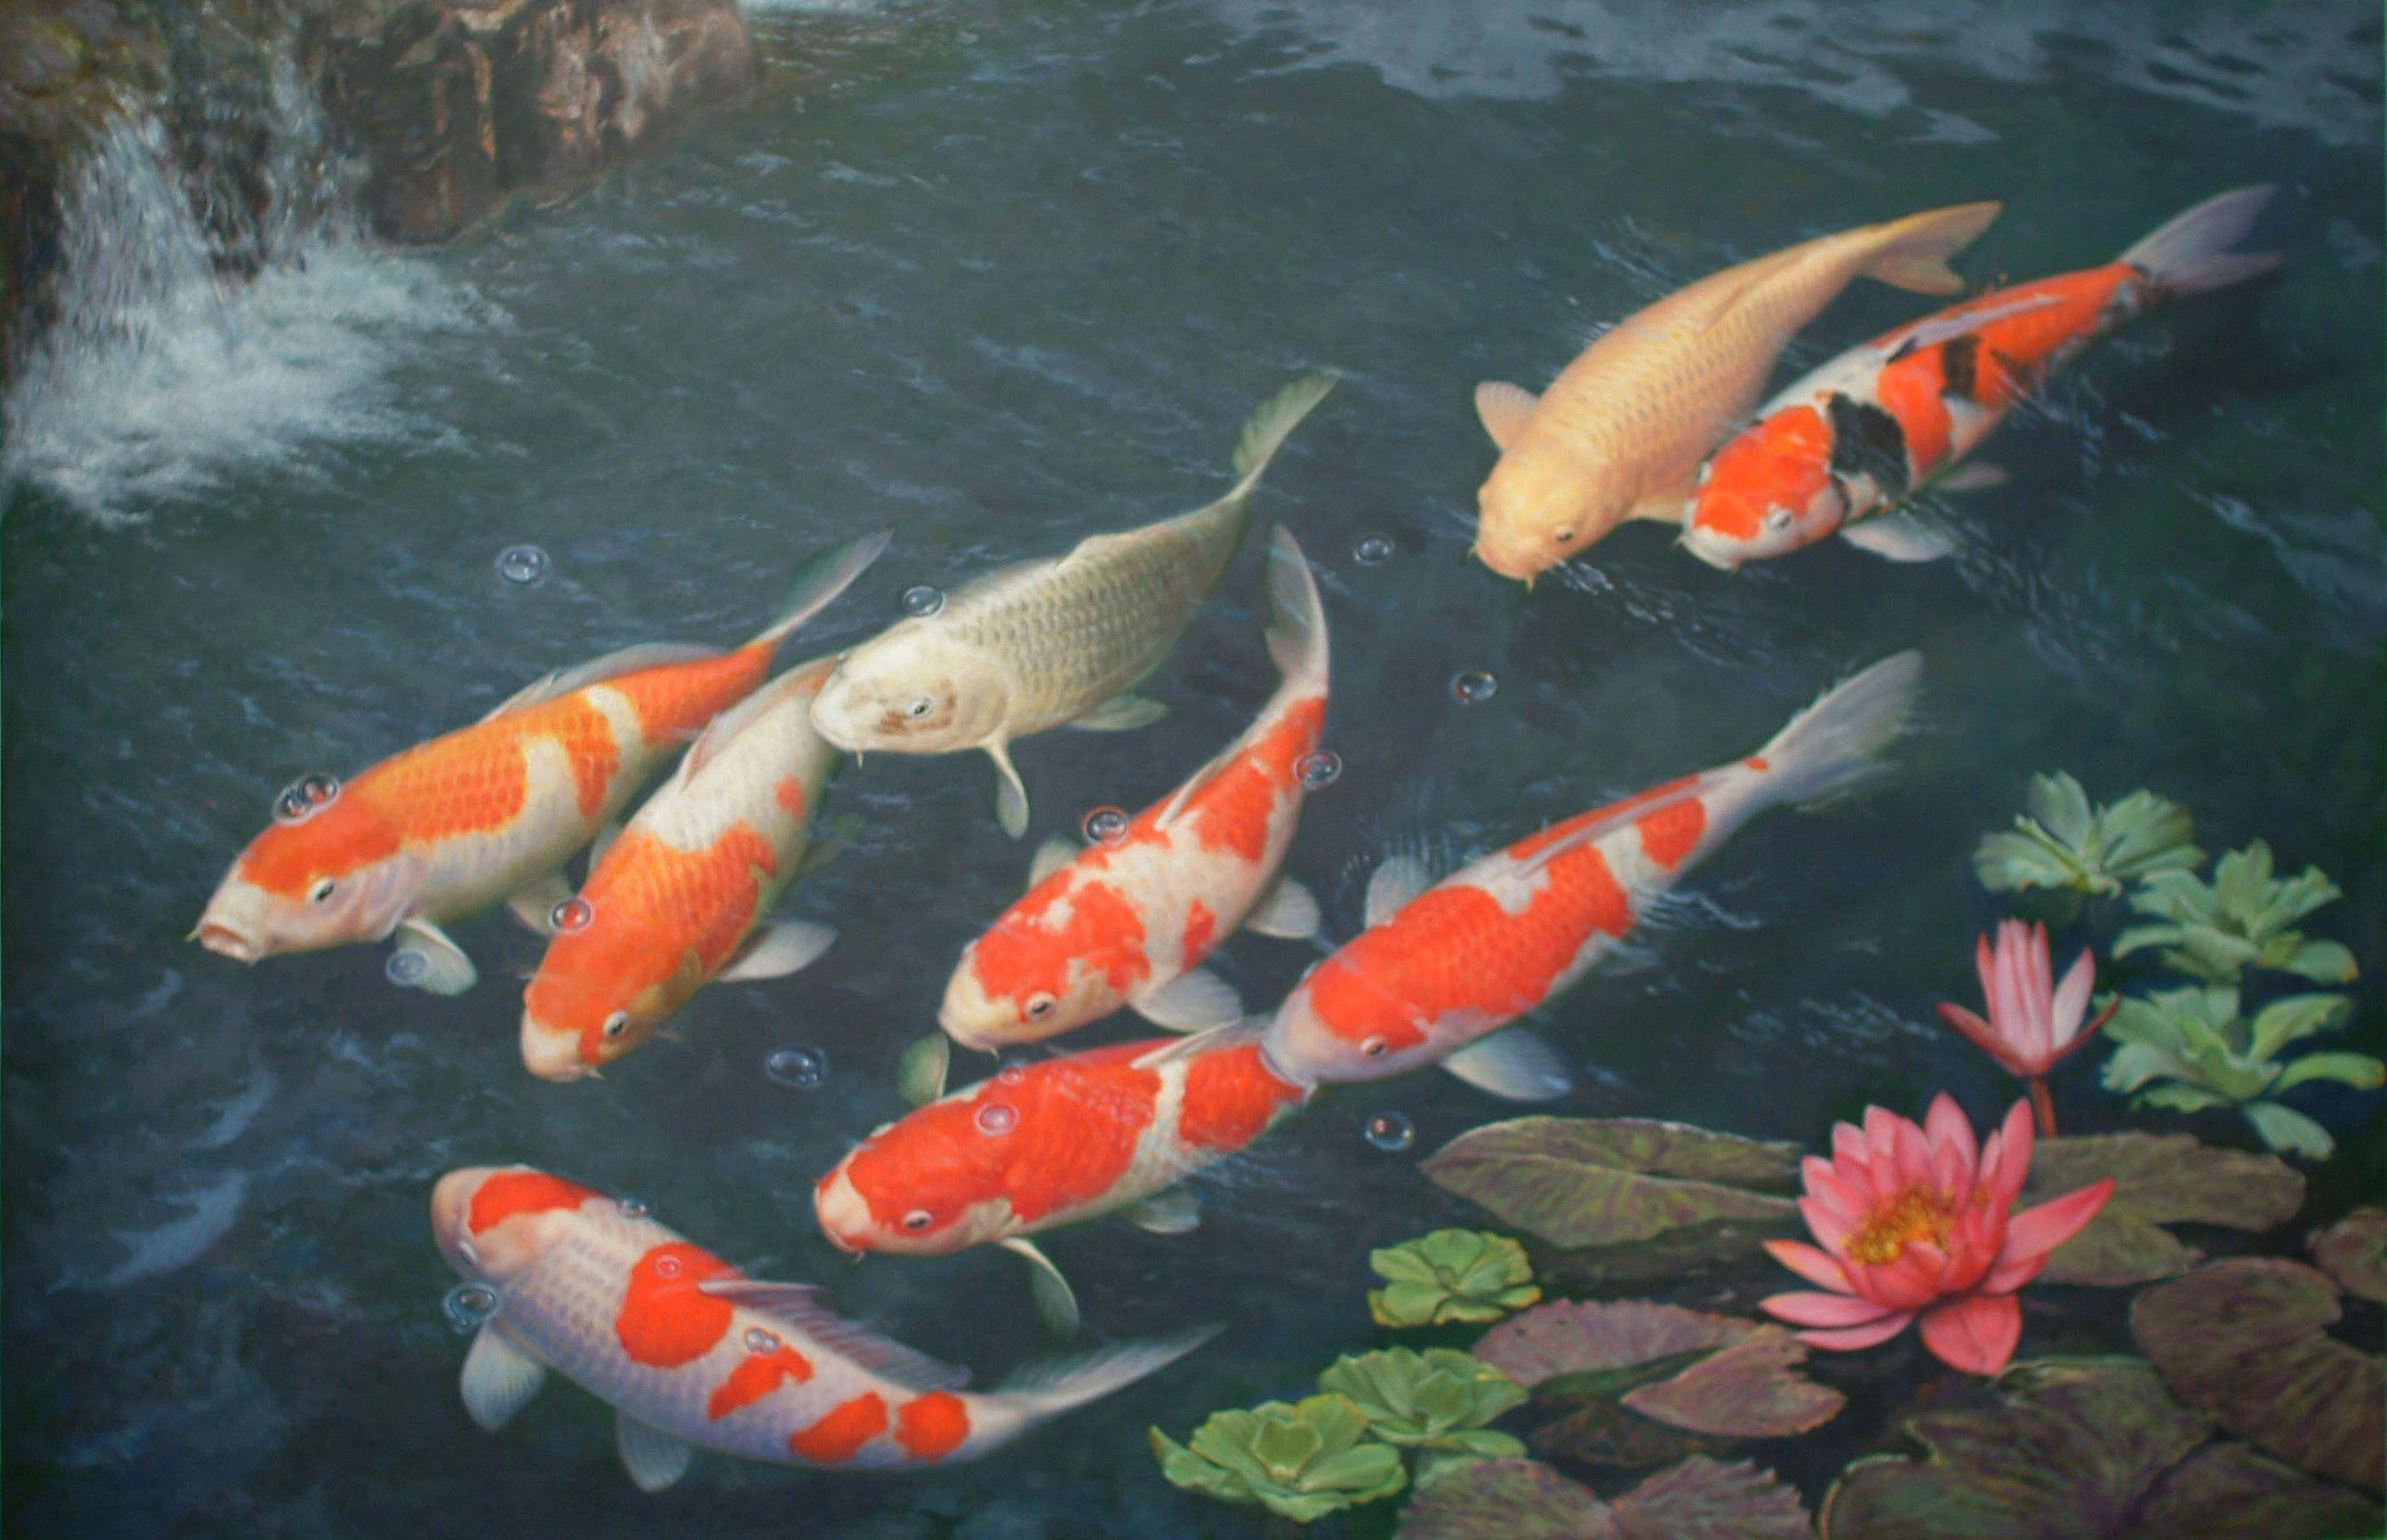 koi fish wallpapers wallpaper cave ForKoi Fish Images